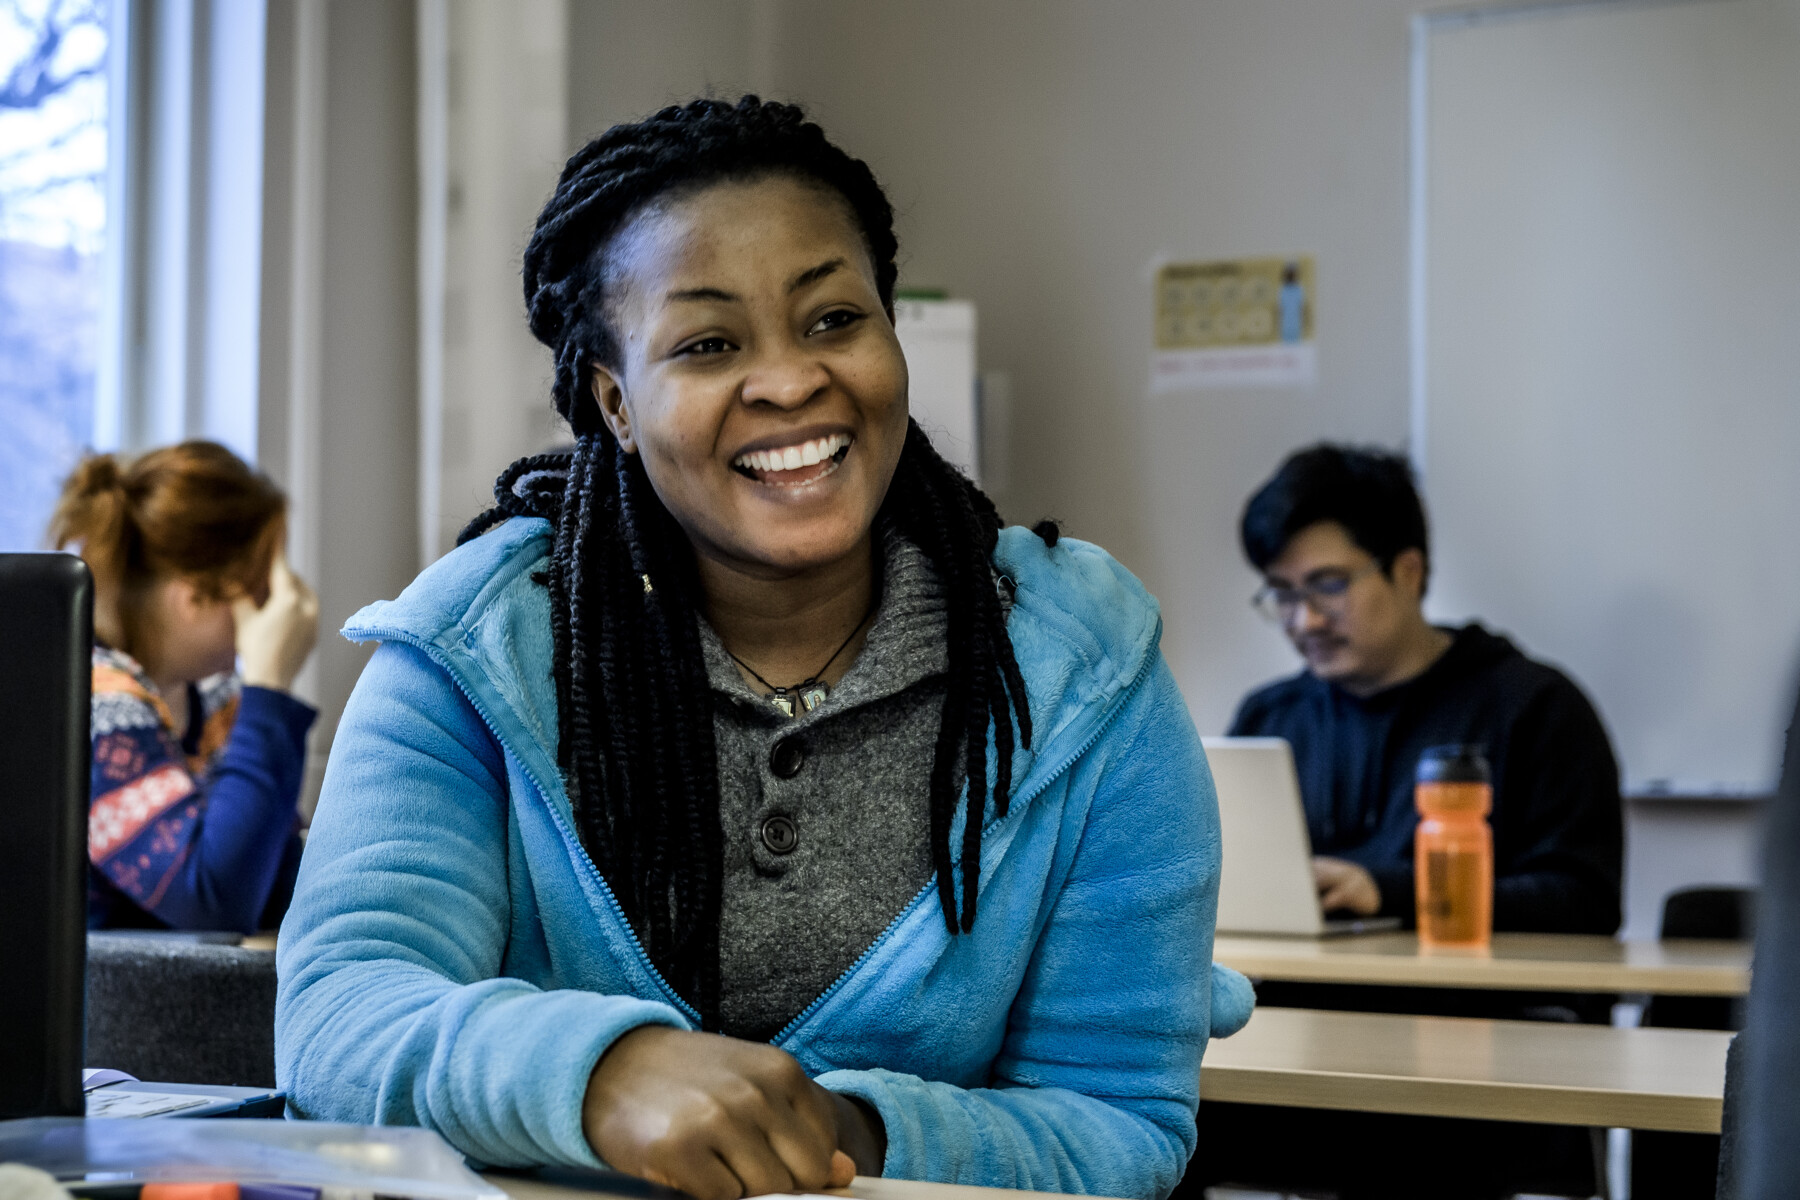 A woman student looking happy in a classroom. Photo.